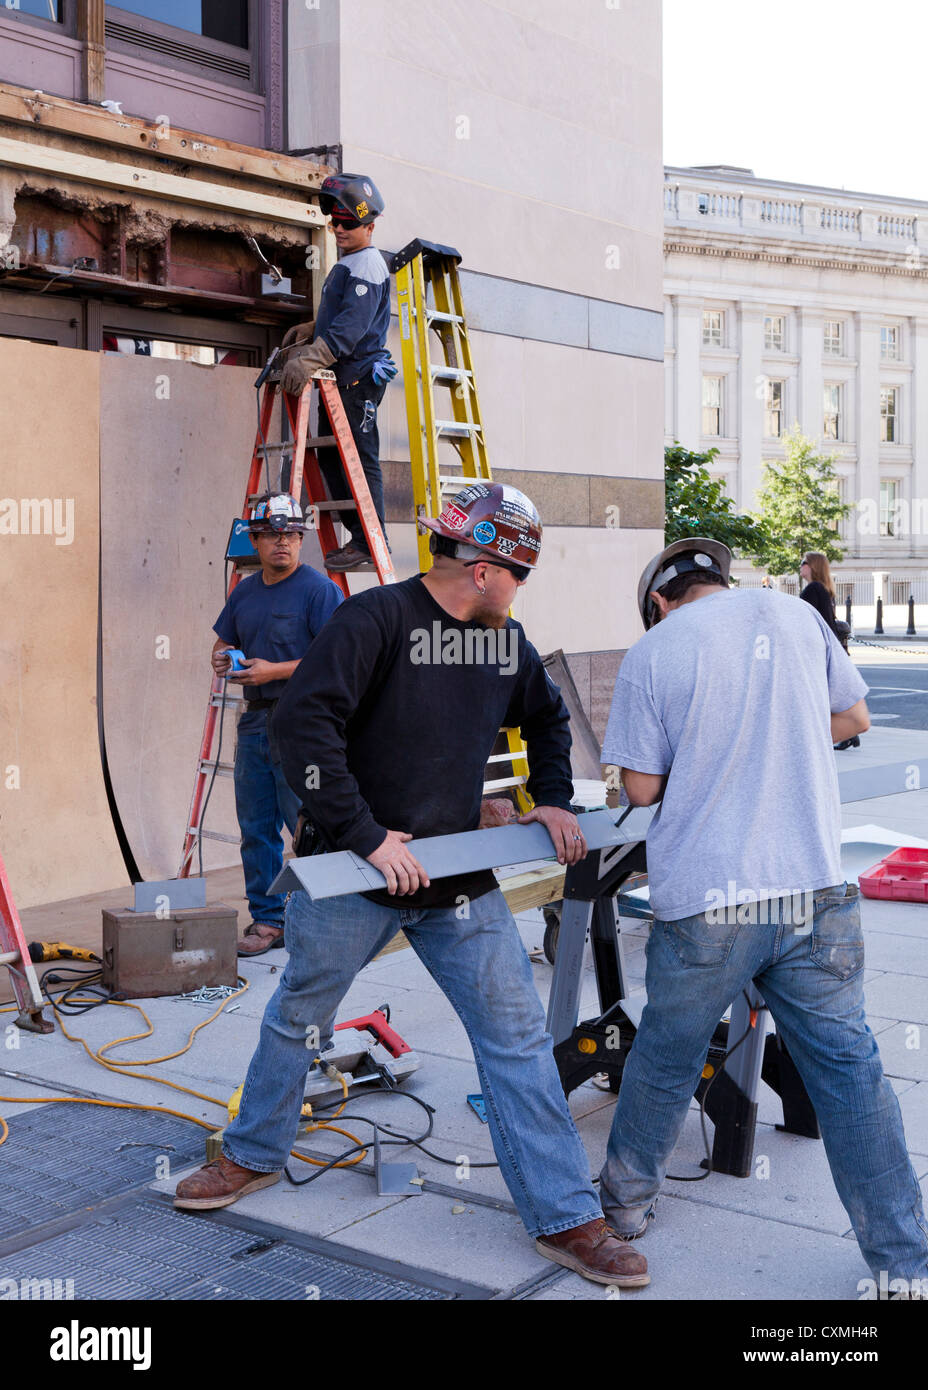 Construction workers repairing exterior of building - Washington, DC USA - Stock Image